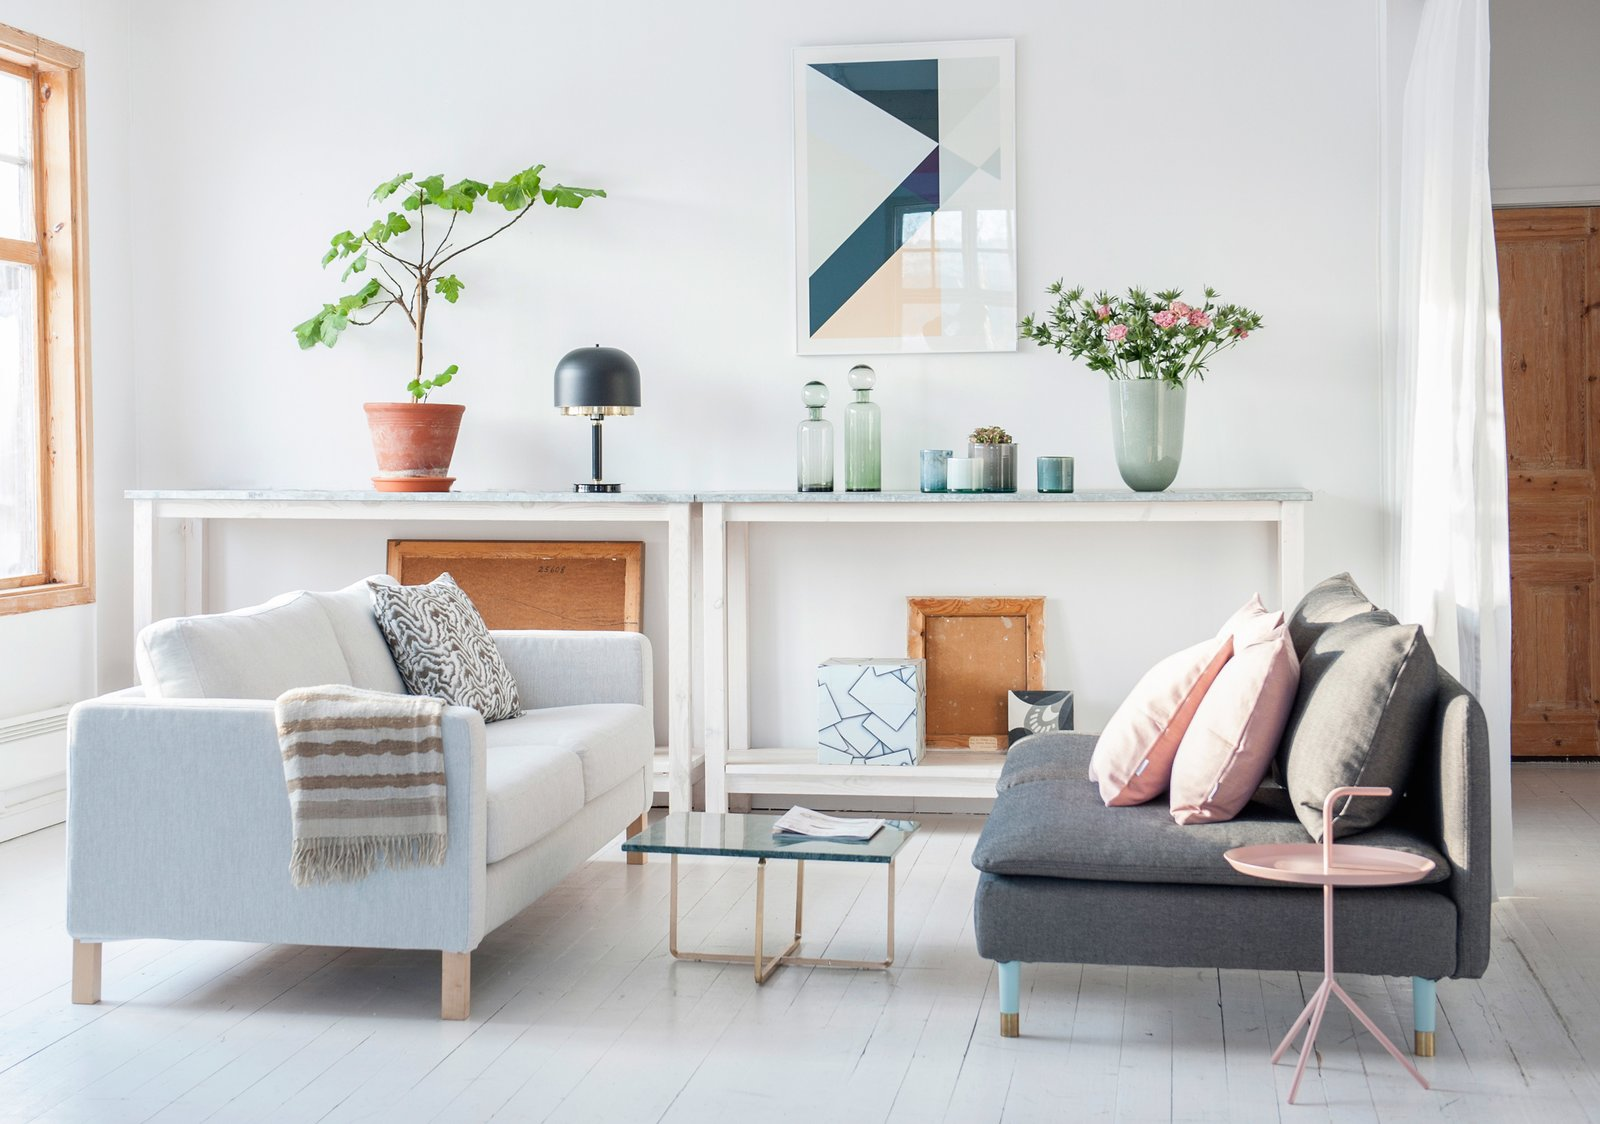 Lazy Ways to Update Your IKEA Furniture With Bemz According to Our Peers